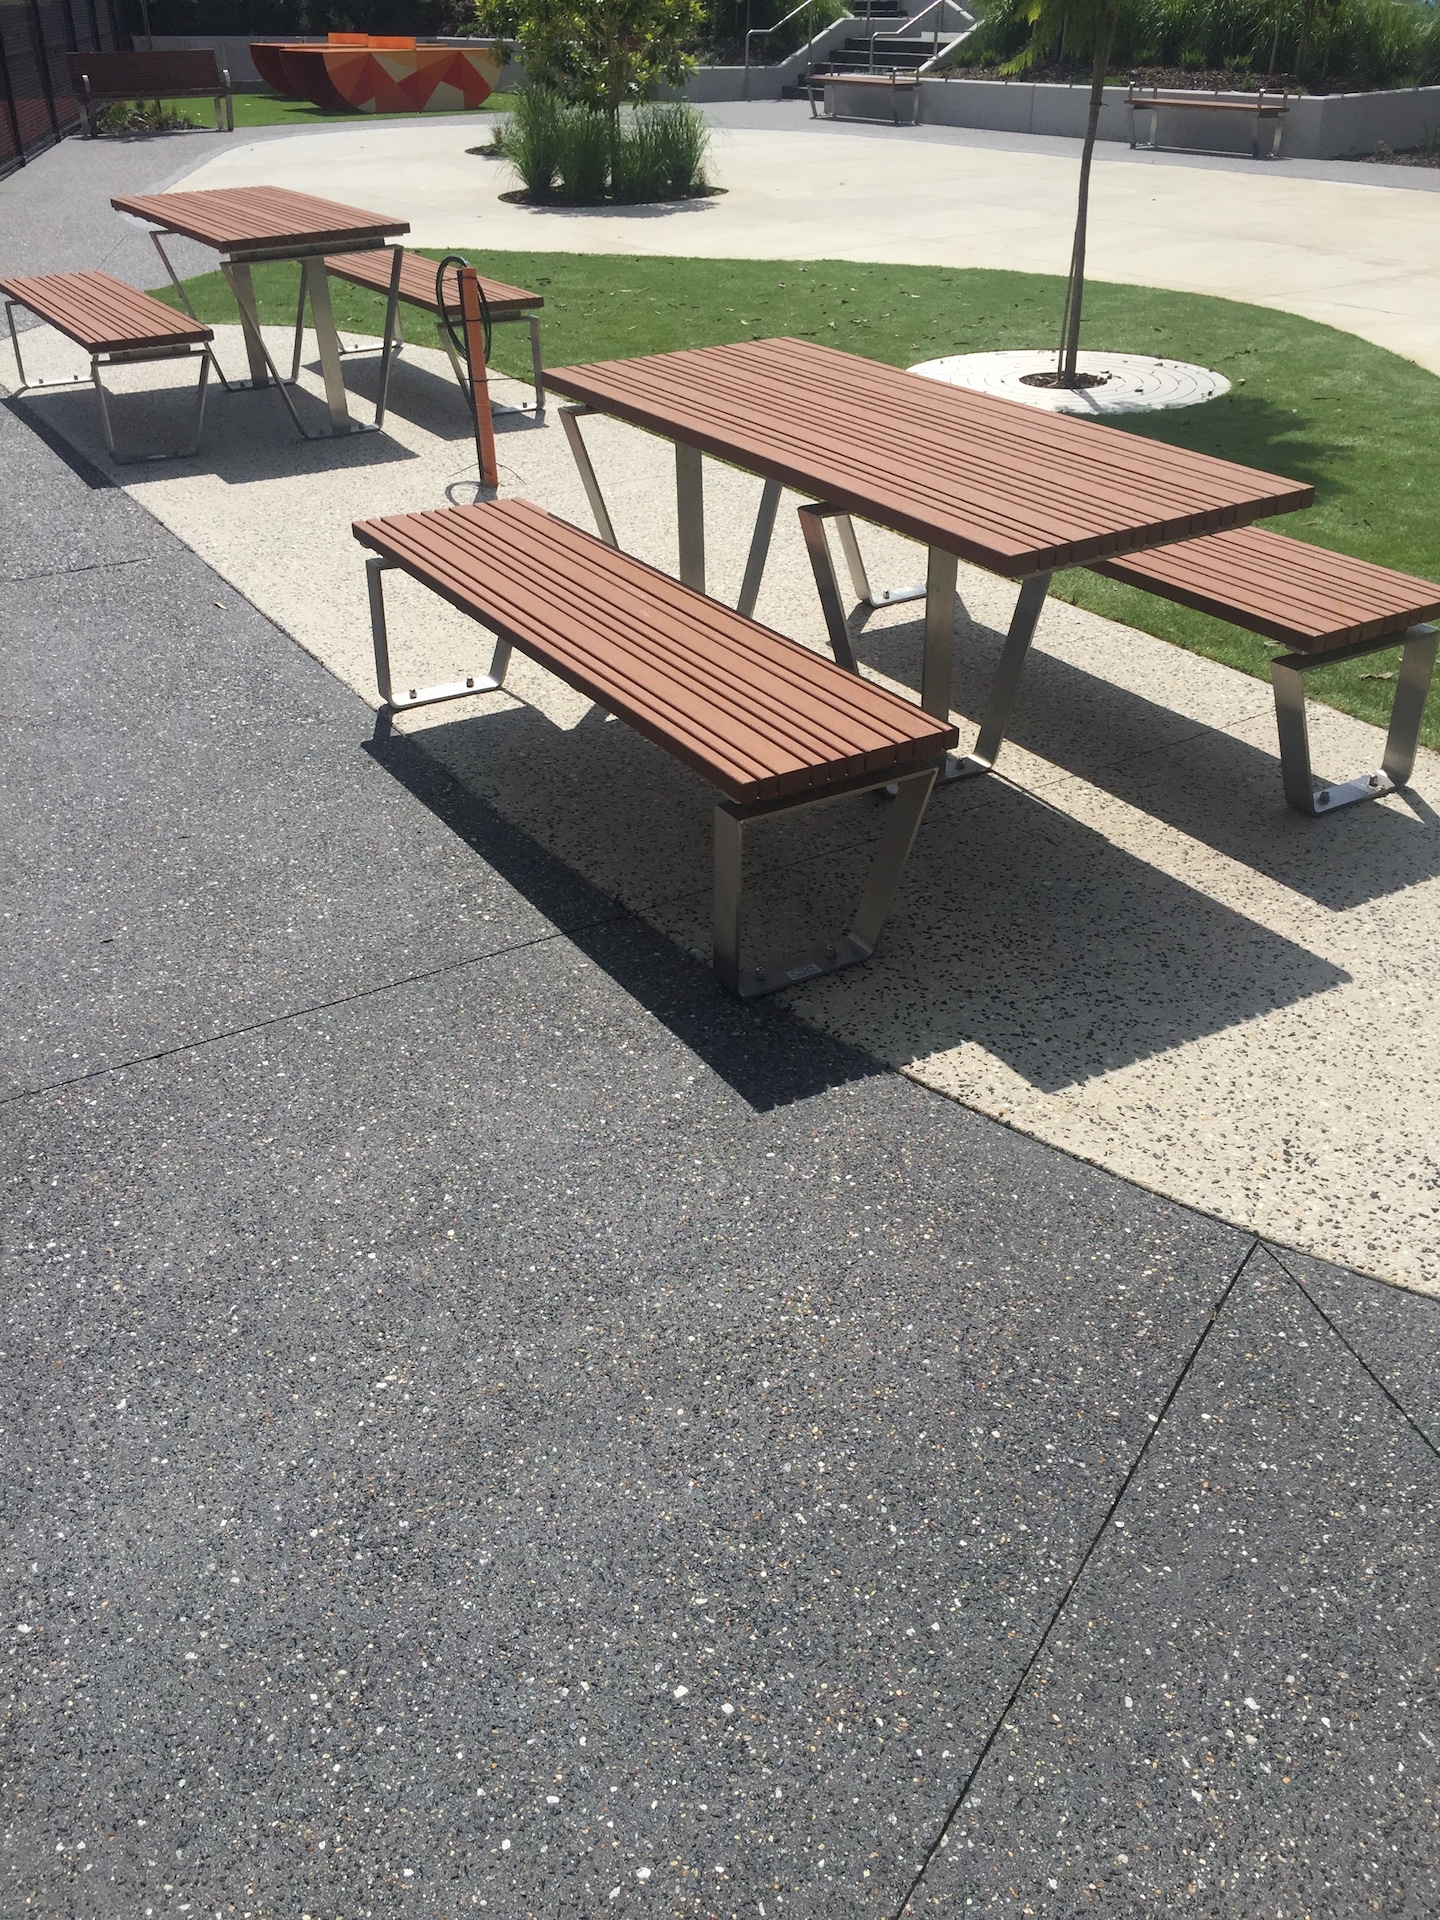 Outdoor Furniture on Exposed aggregate concrete.